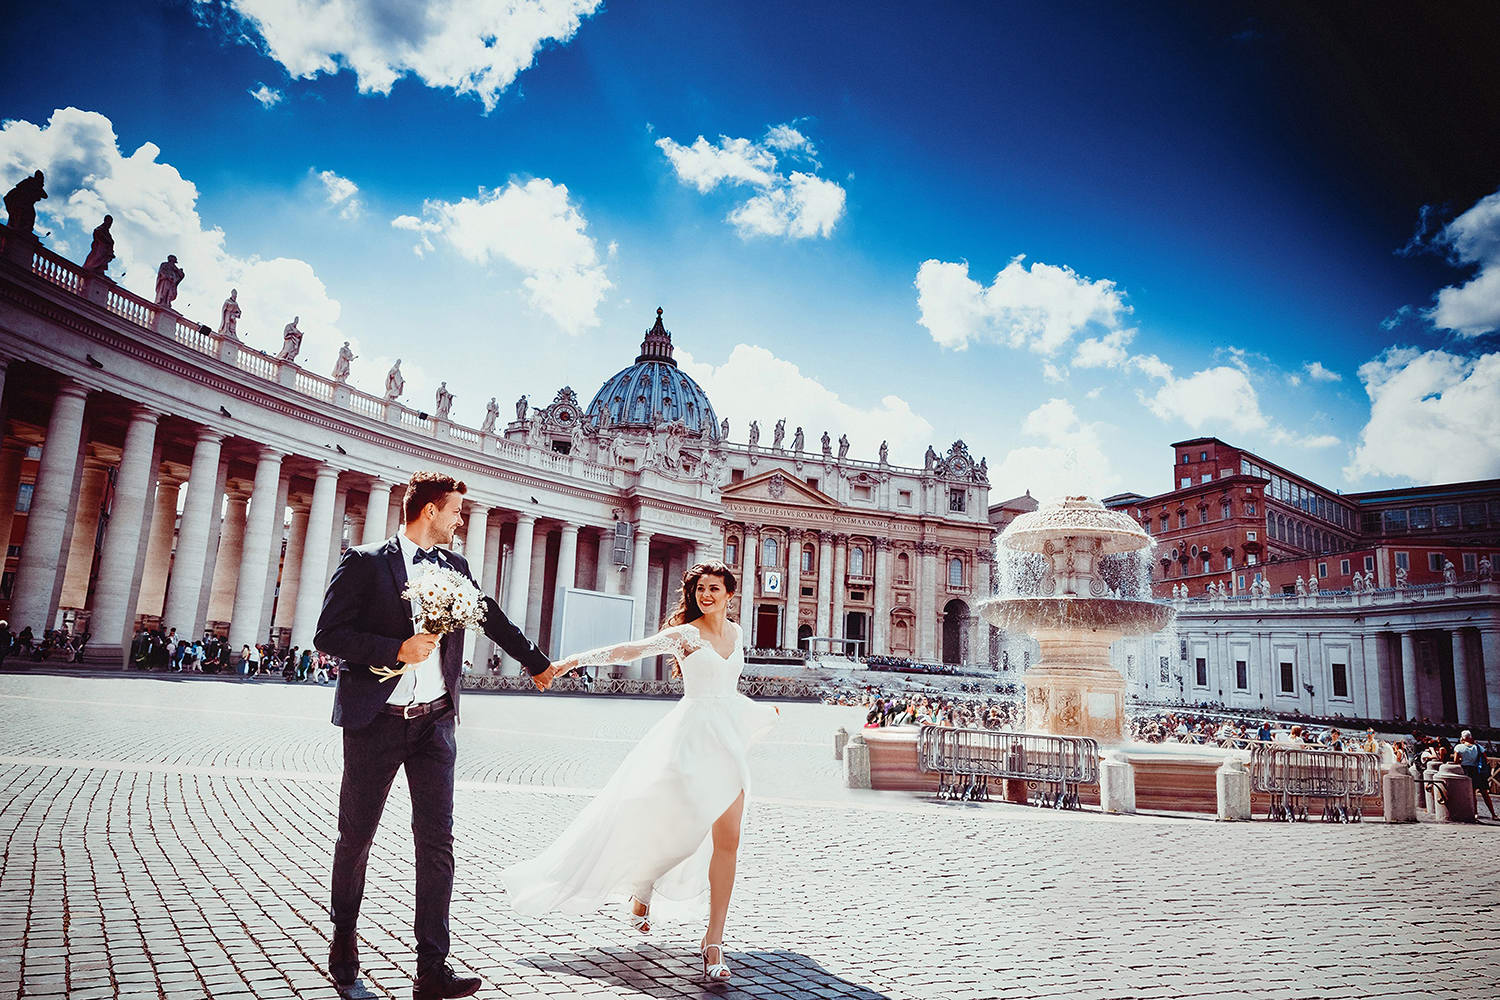 Wedding photo editing, people removal from photo beside vatican fountain